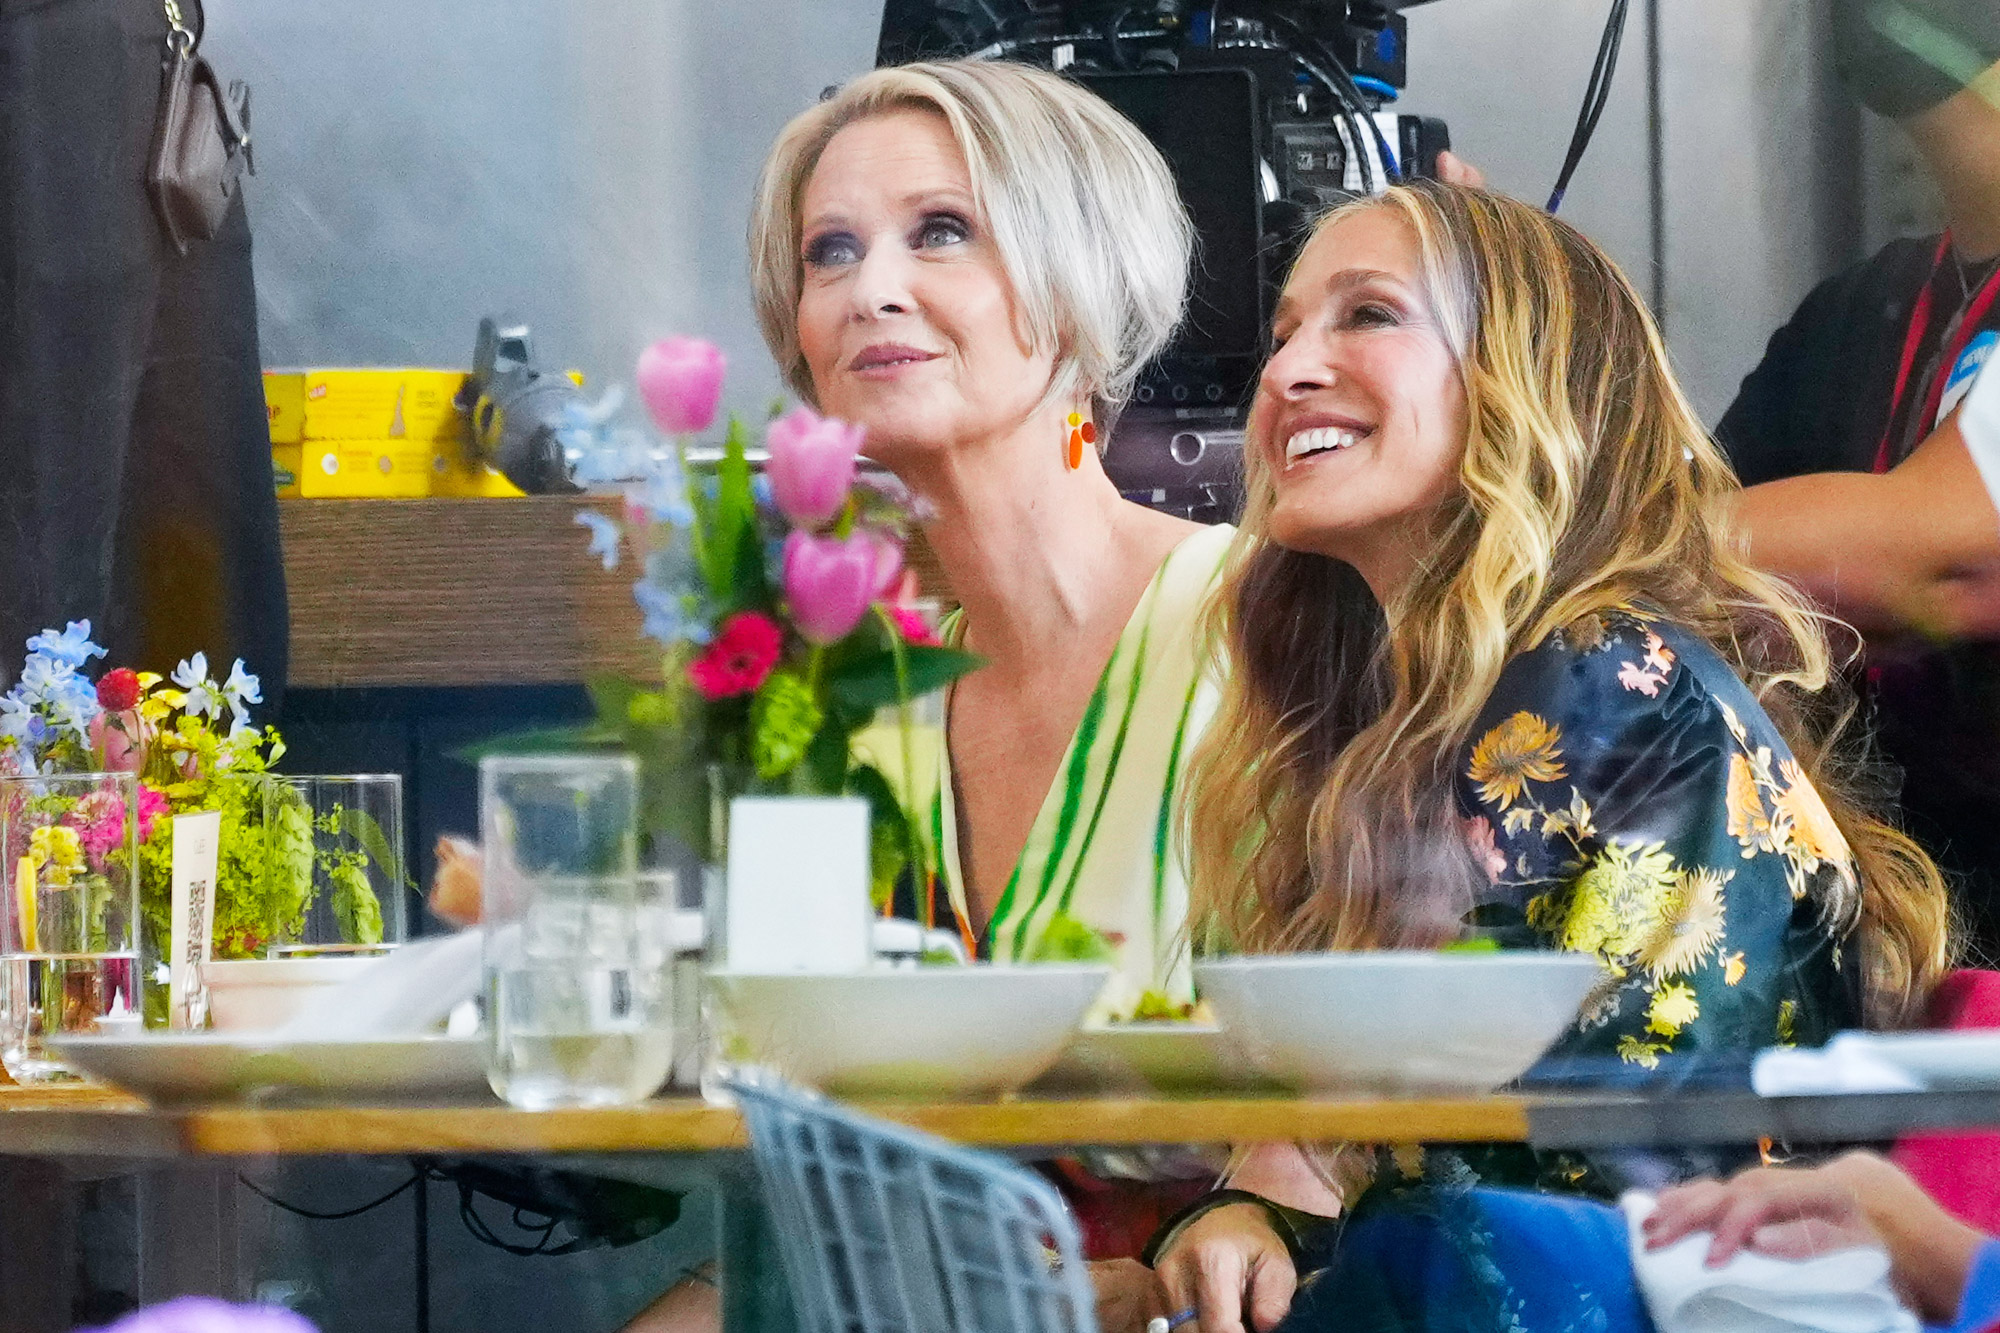 """Sarah Jessica Parker, and Cynthia Nixon work on location filming the series """"And Just Like That..."""" on July 13, 2021 in New York City."""